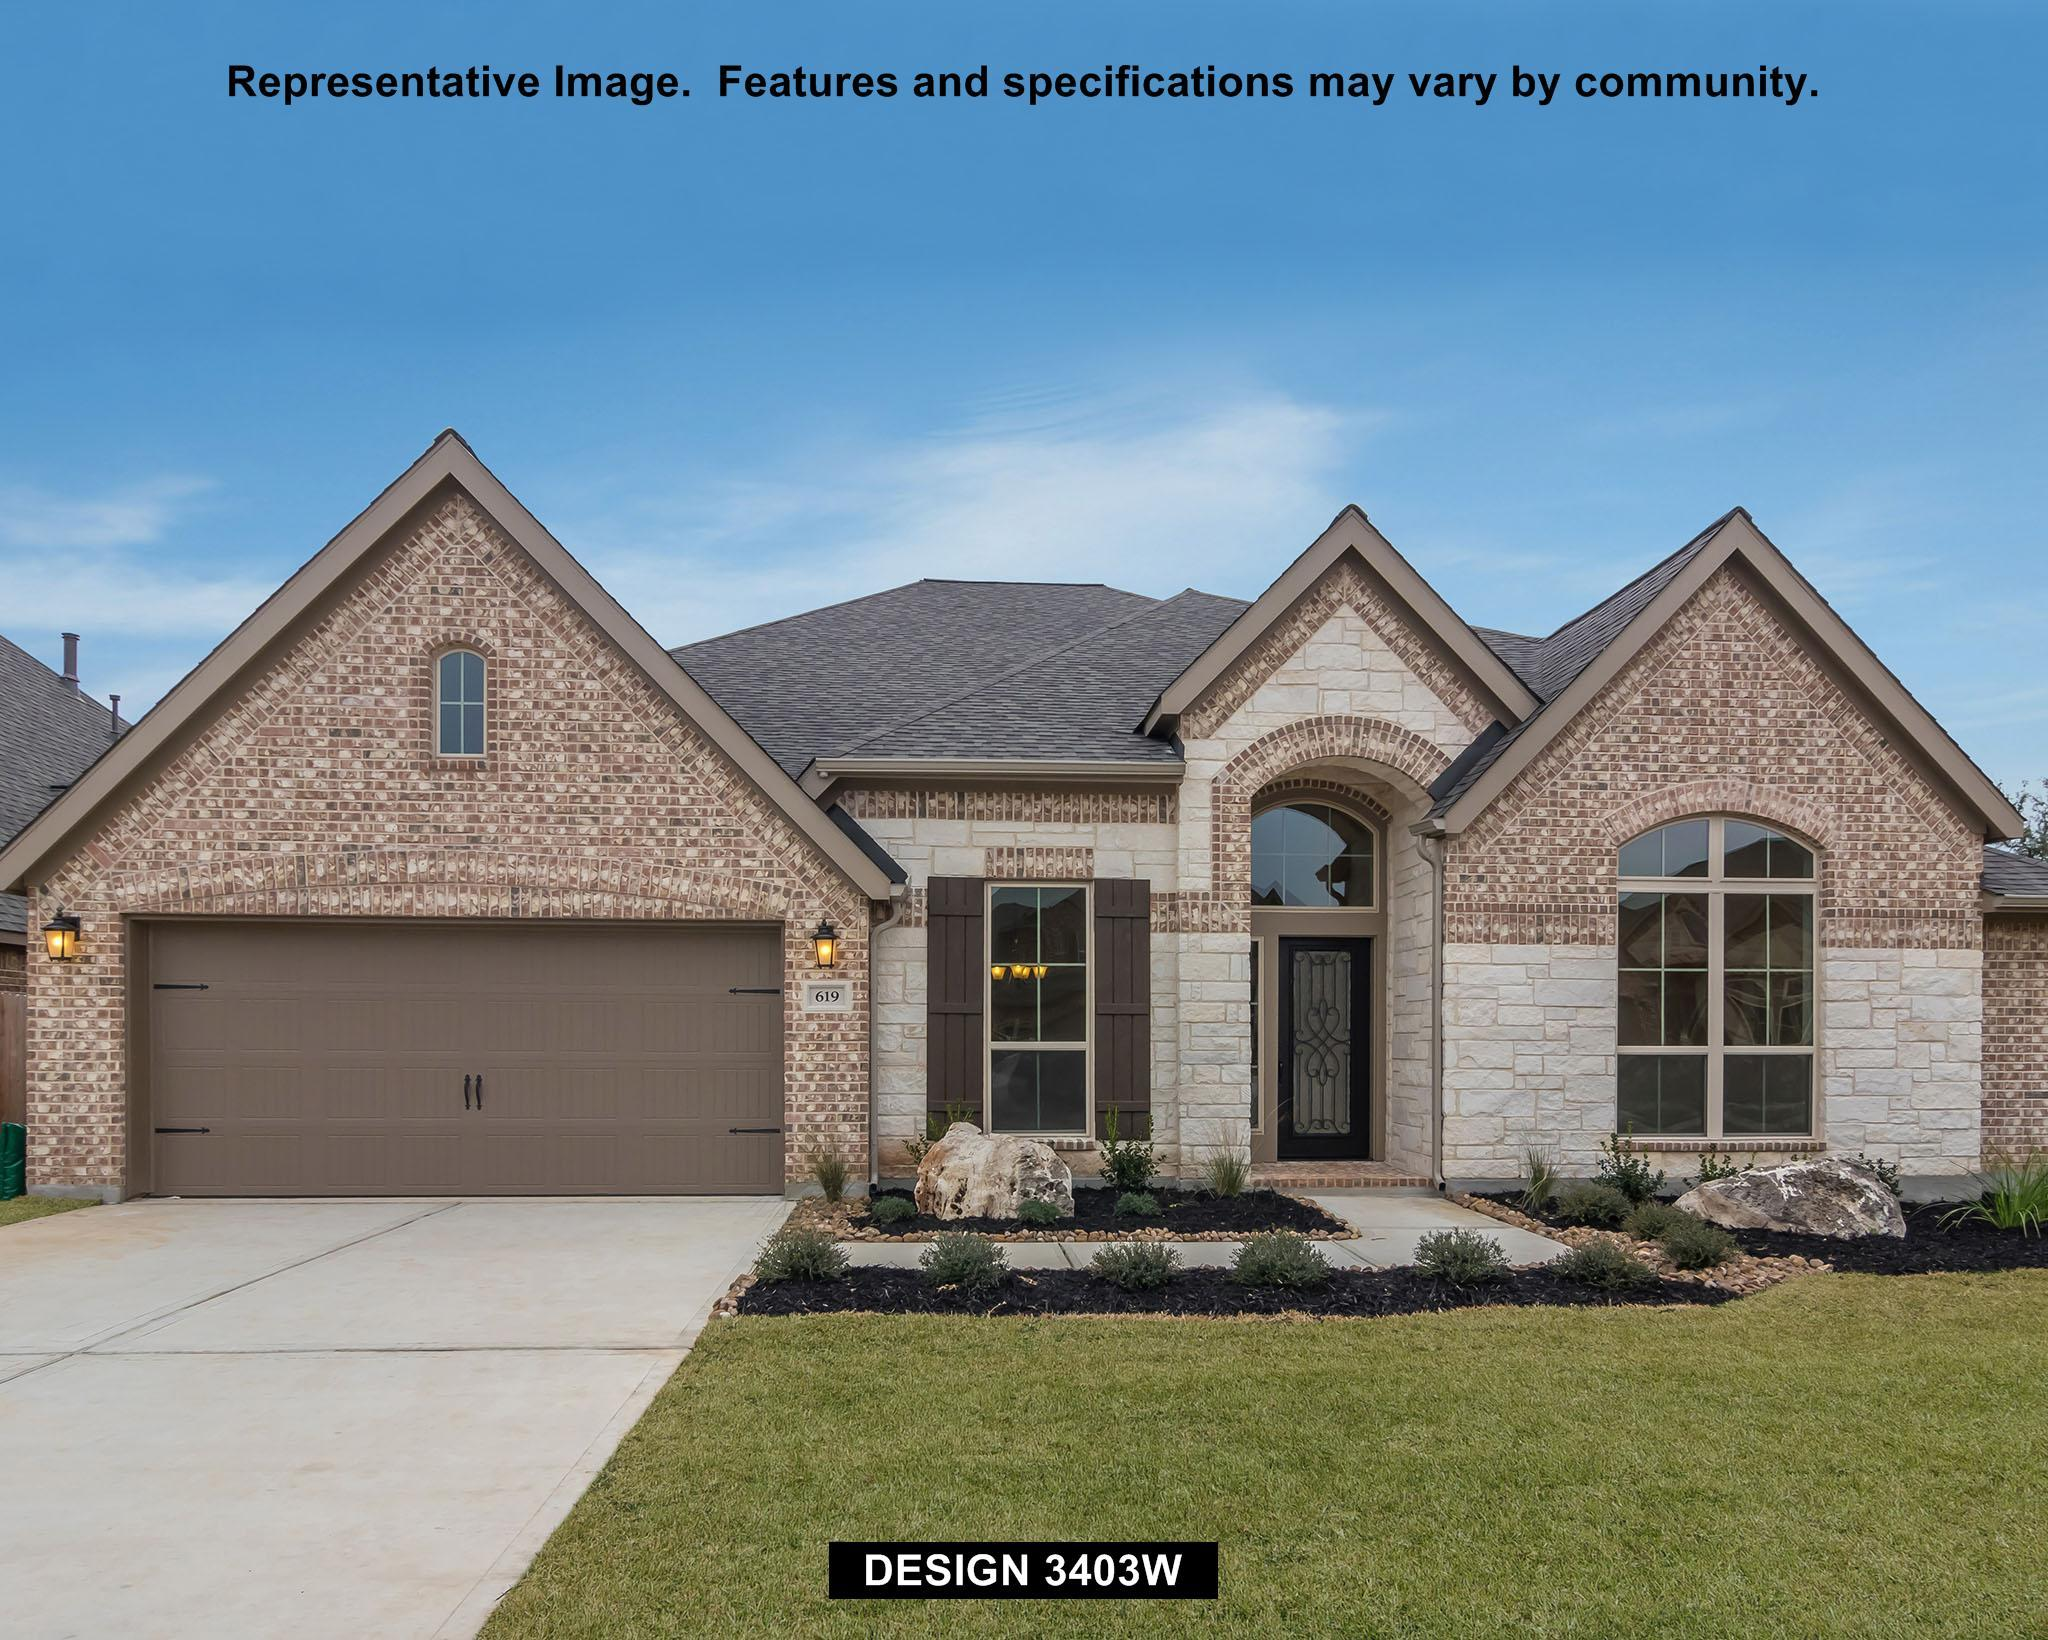 meet fort bend county singles Veranda offers new houses for sale in thriving fort bend county near richmond visit us today to find out more about the community of veranda meet our builders.